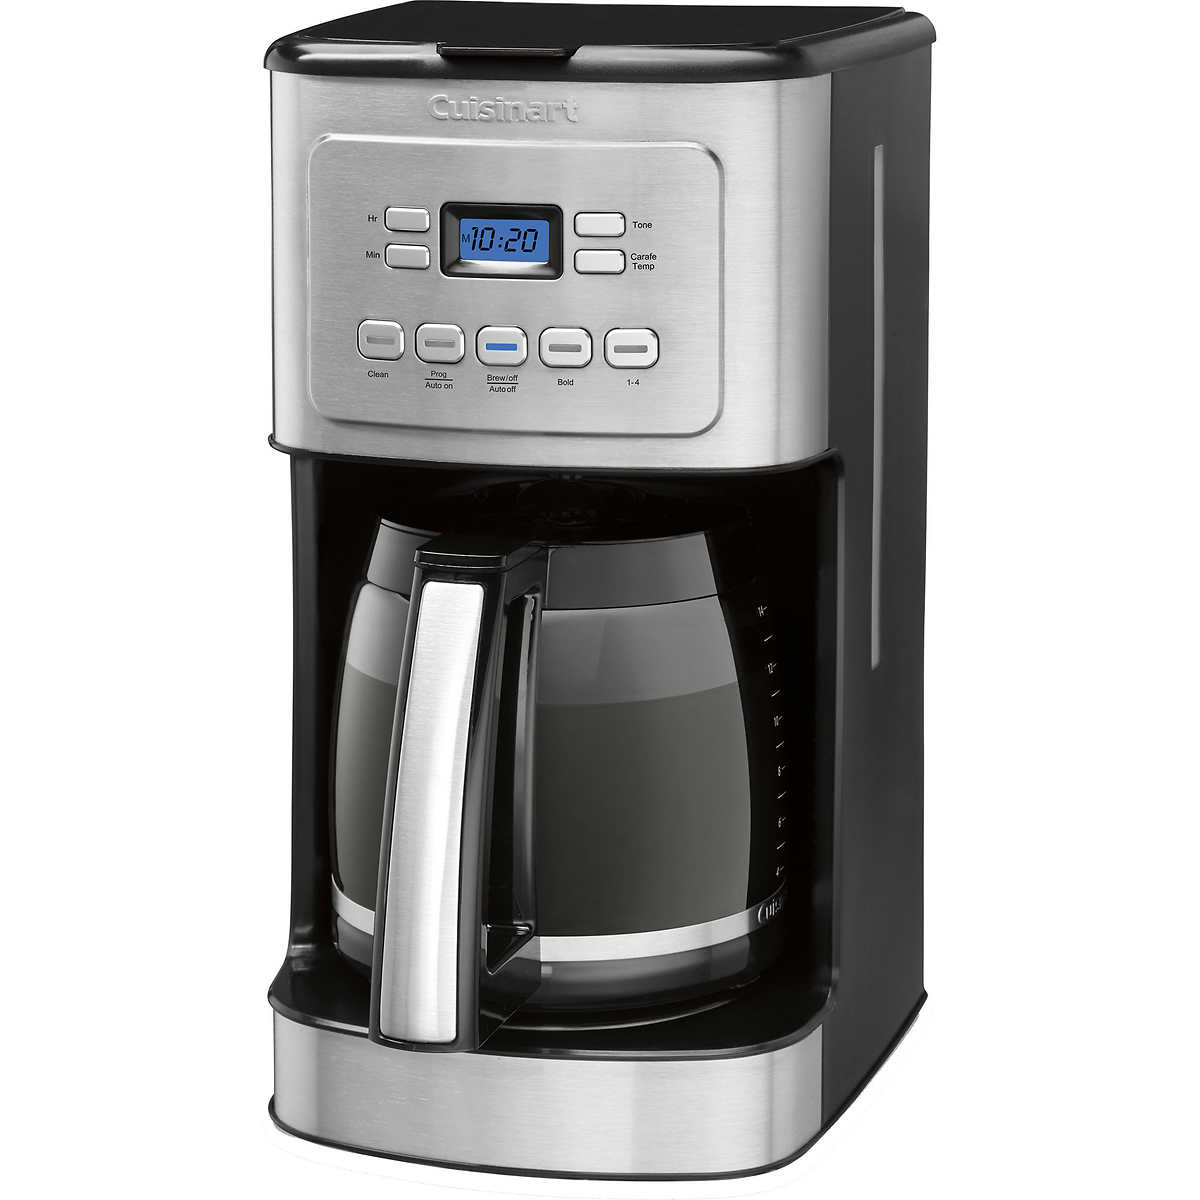 Cuisinart coffee maker stainless steel carafe - Cuisinart 14 Cup Programmable Coffeemaker Item 565000 Click To Zoom